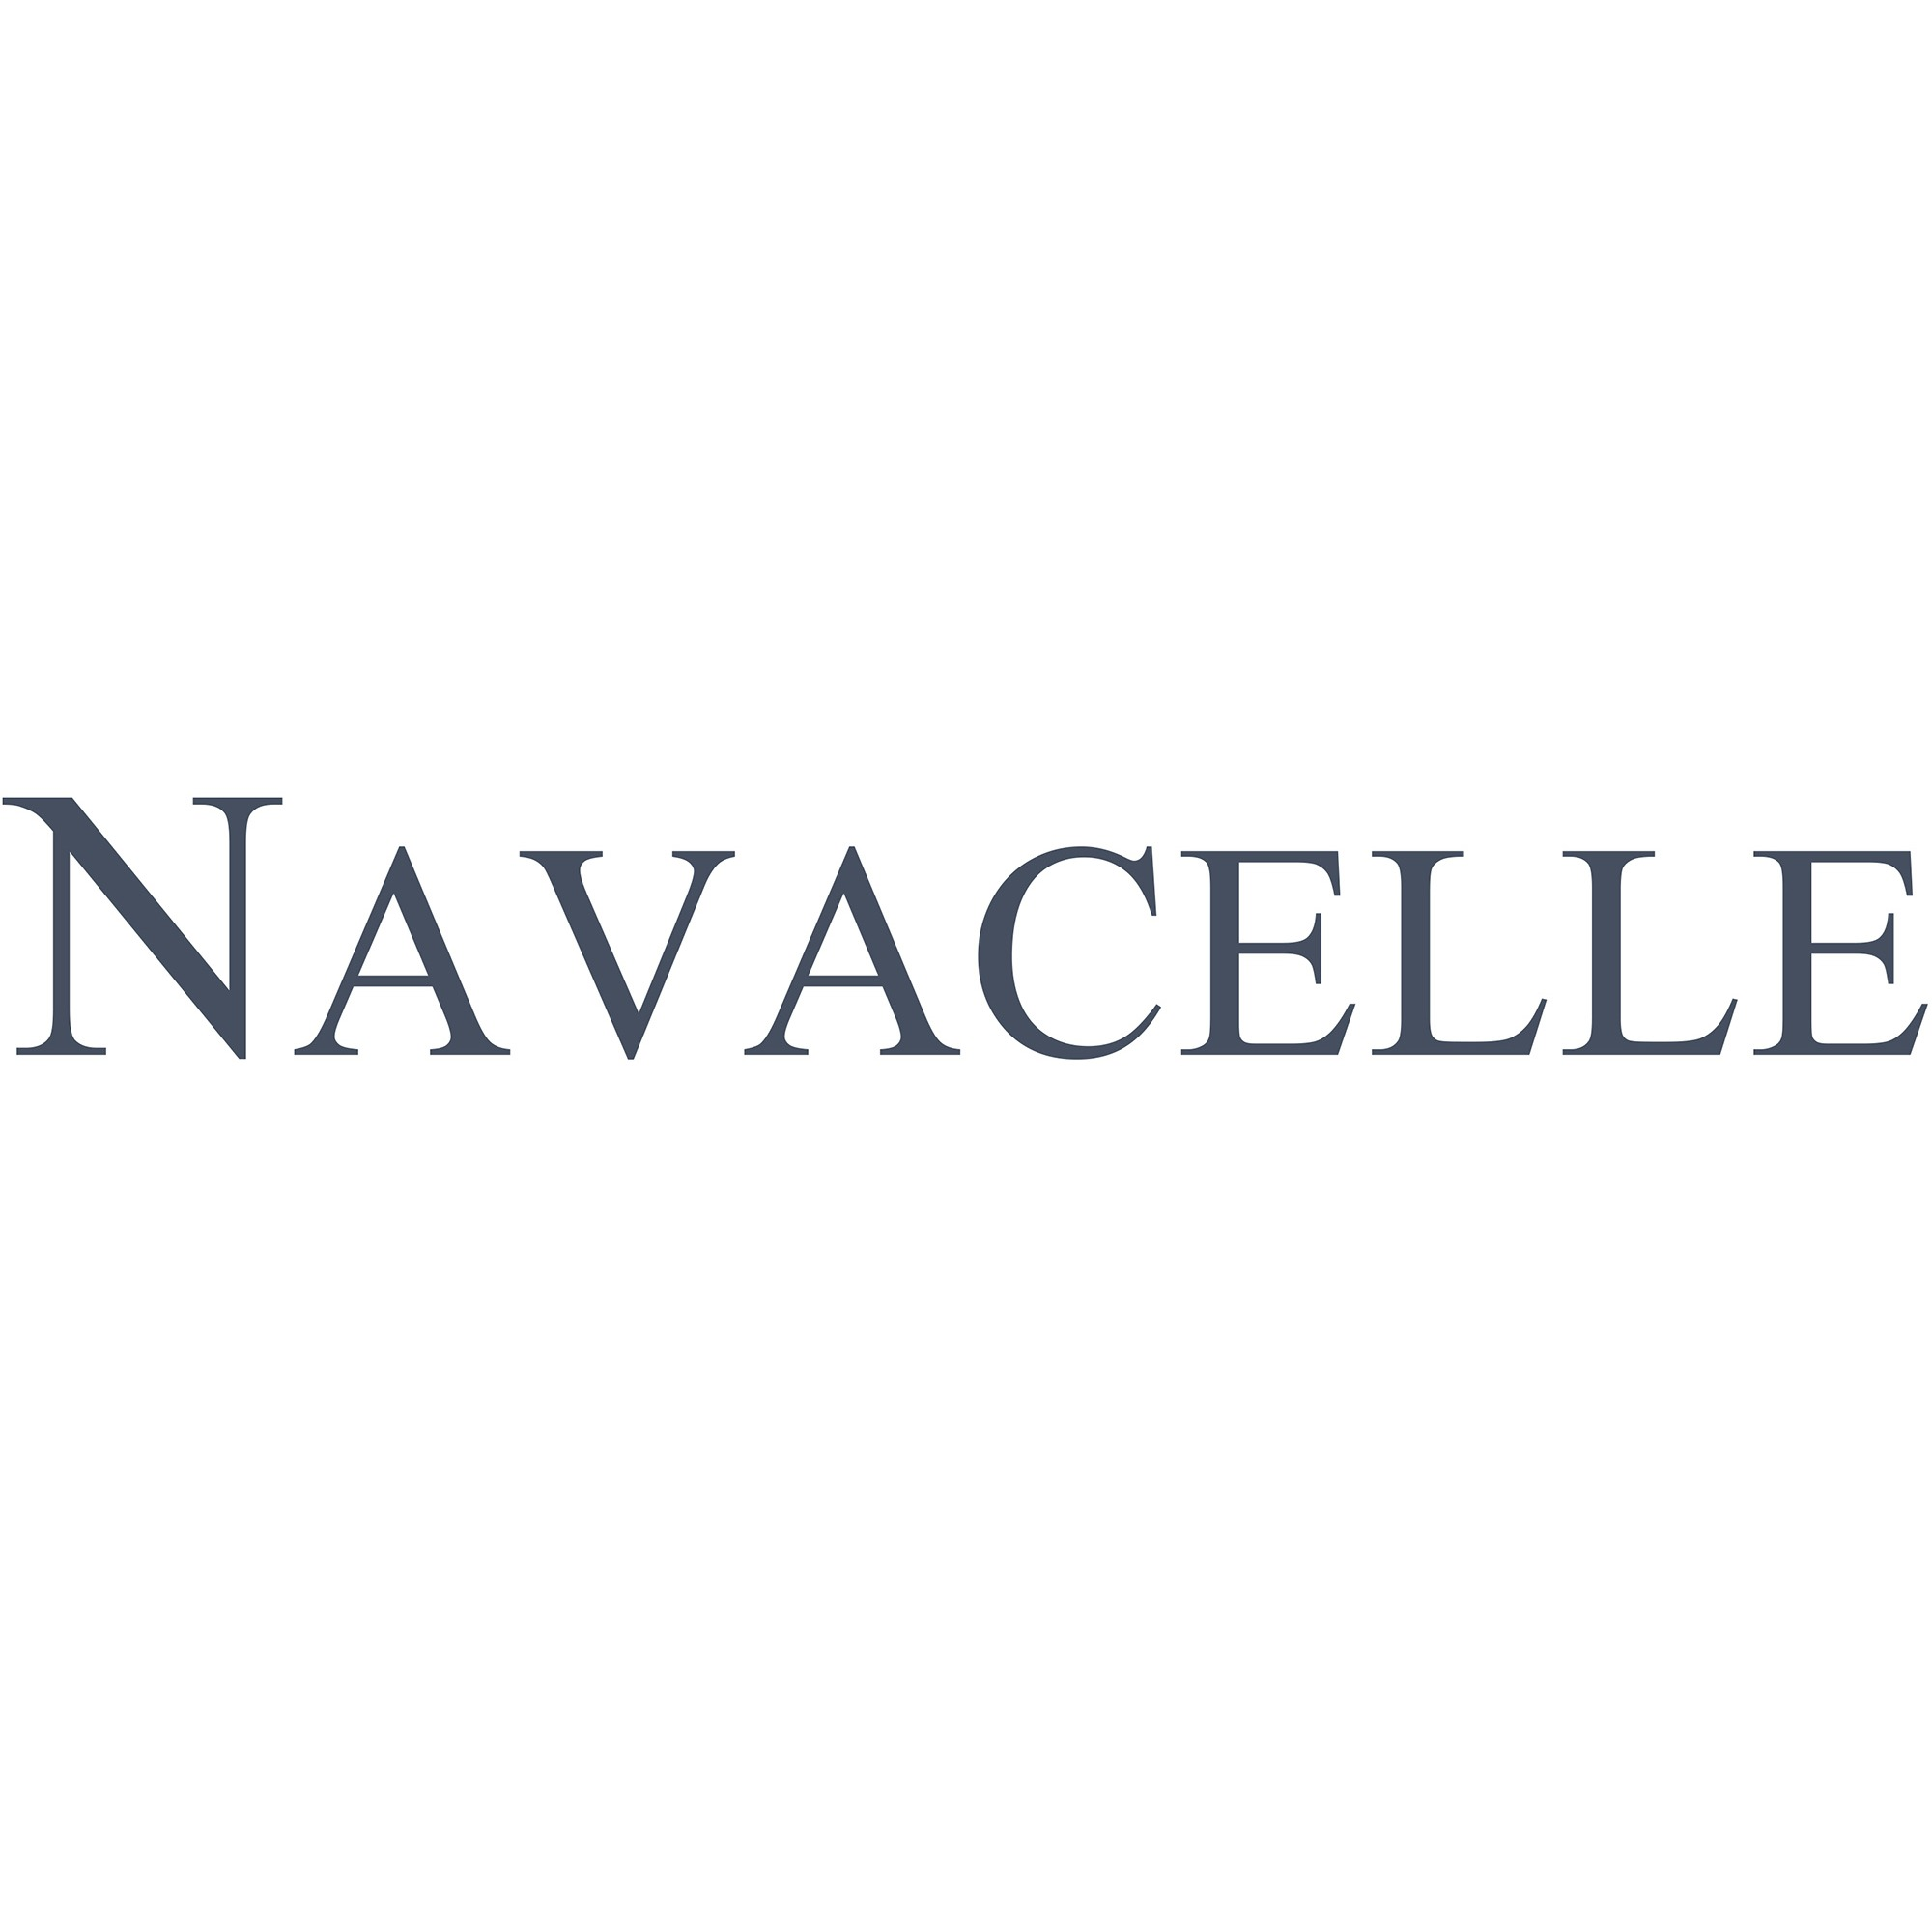 the Navacelle logo.